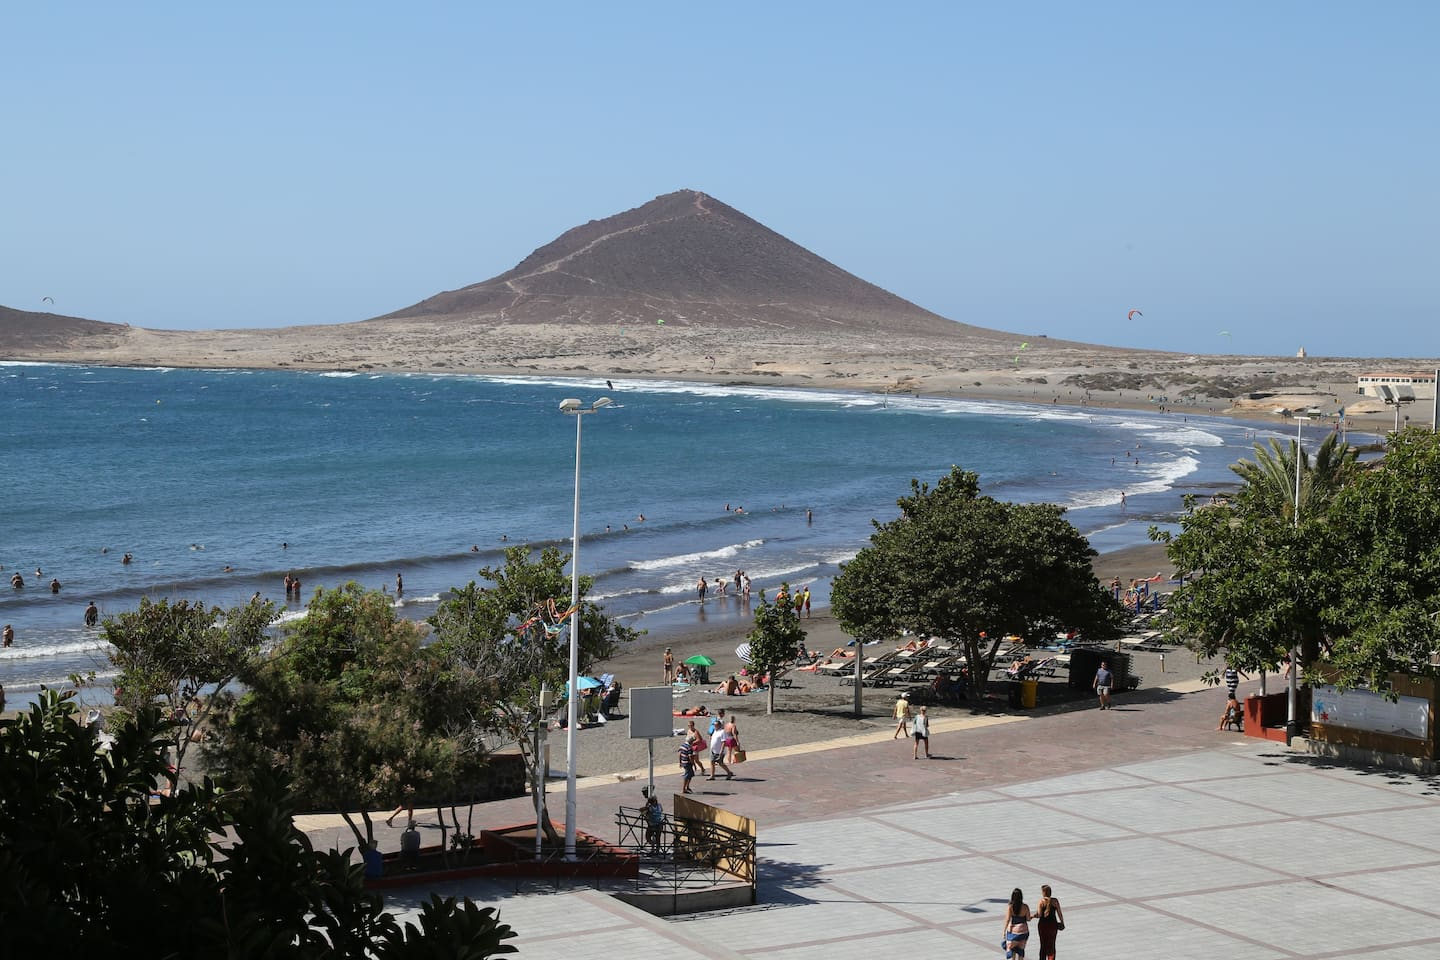 The view from the balcony - the El Médano beach